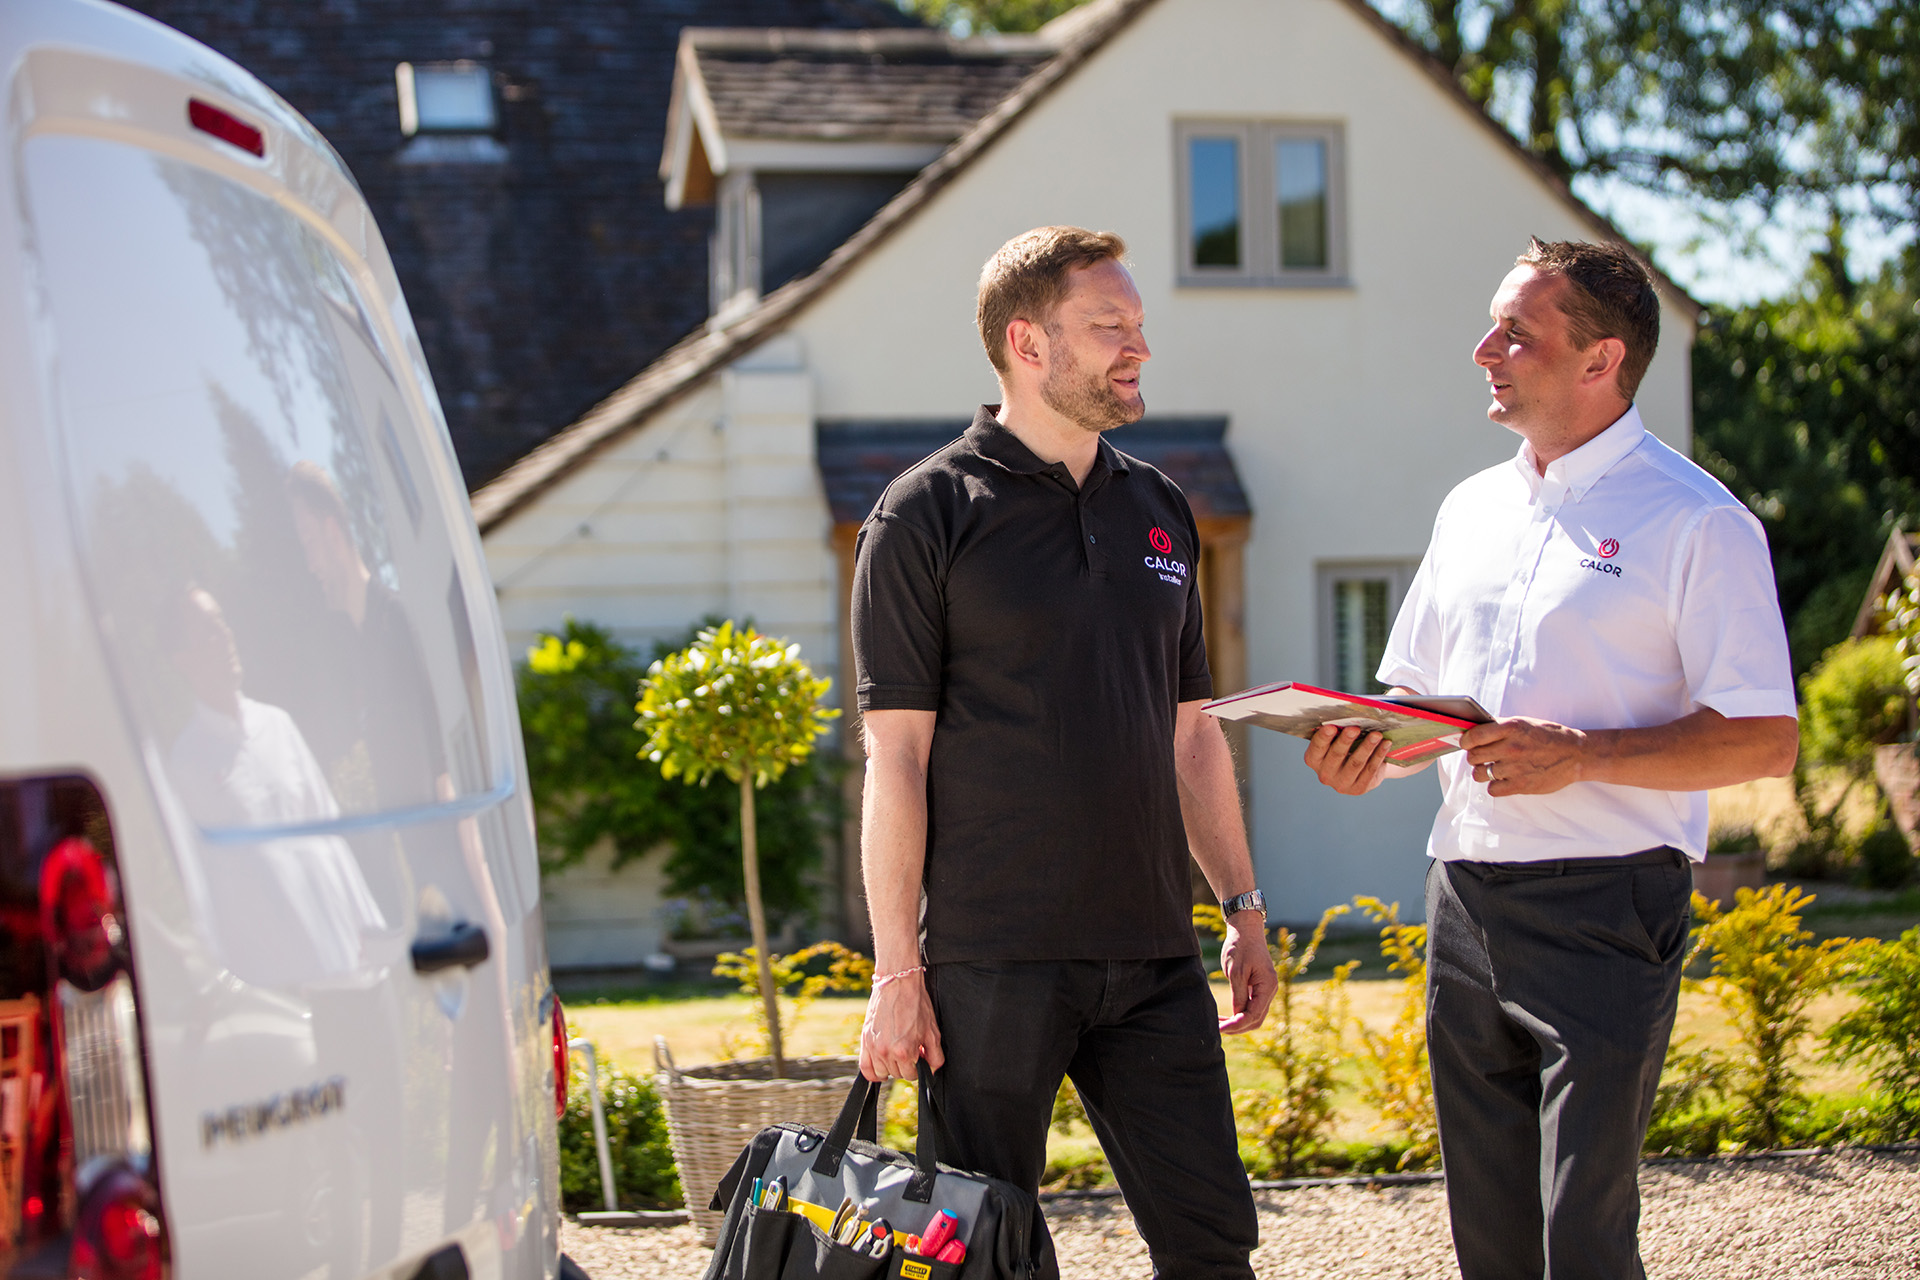 Two Calor employees talking outside of a Calor customer's home